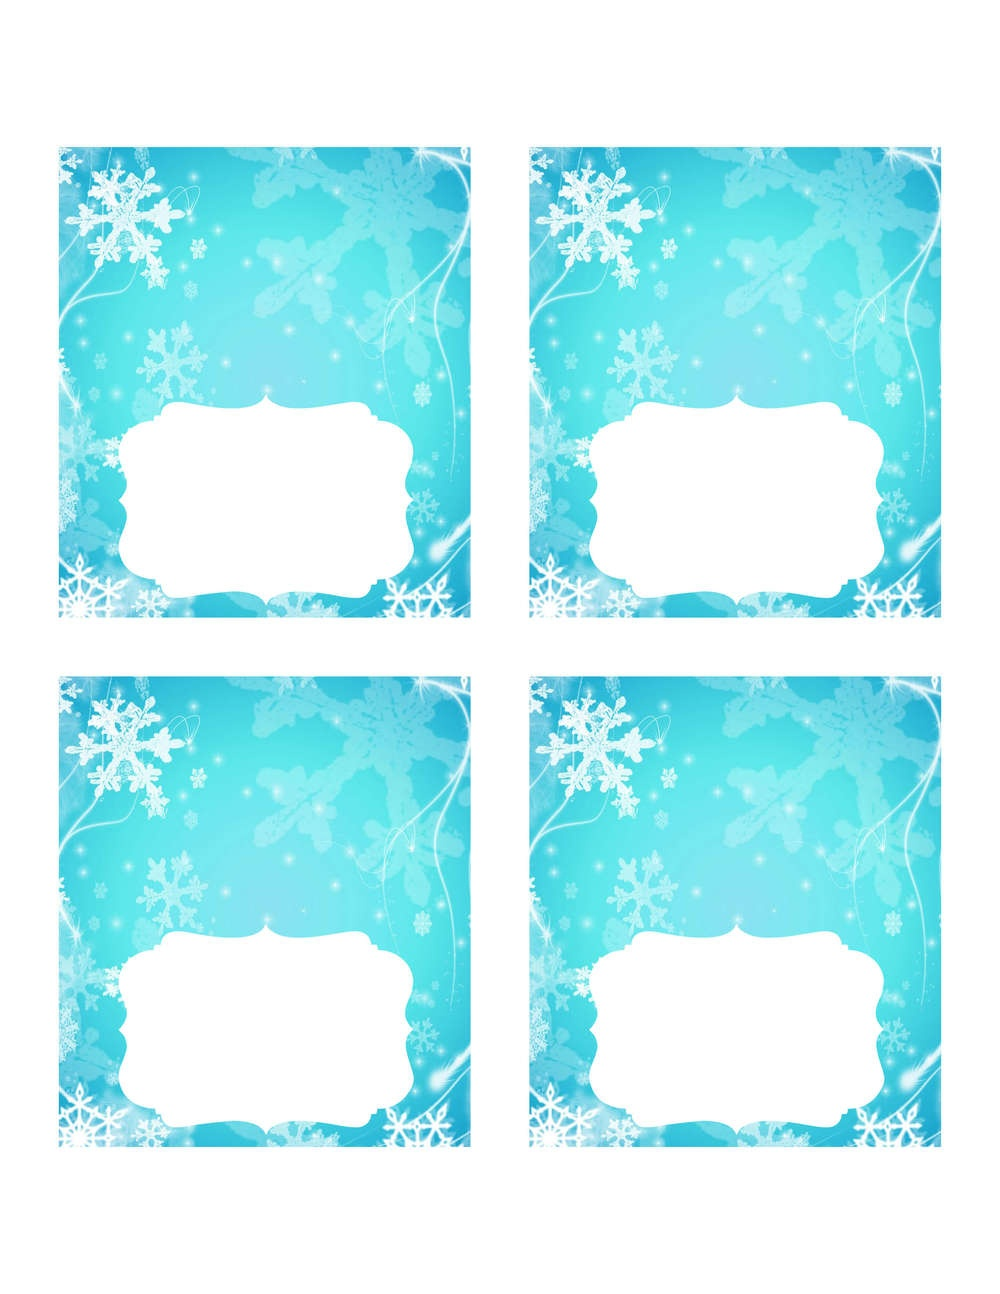 Frozen Party Ideas With Free Printables - Free Printable Food Cards